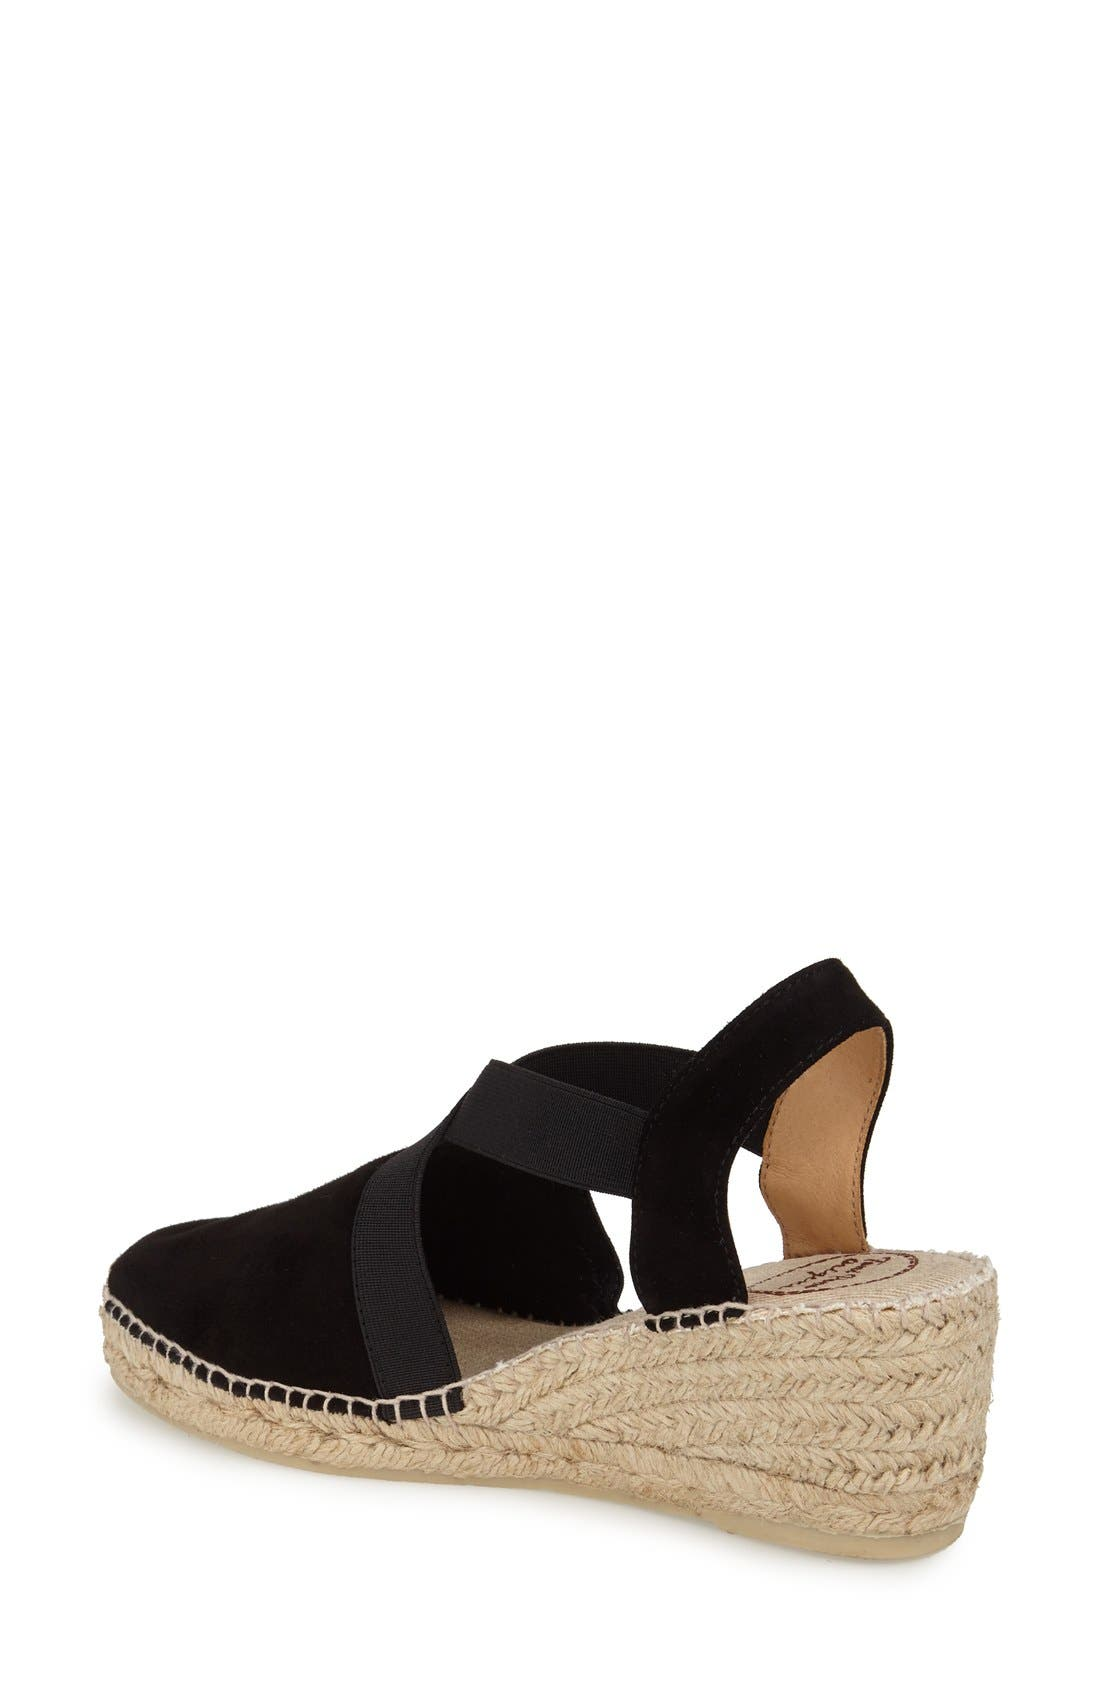 TONI PONS, Tona Espadrille Wedge, Alternate thumbnail 3, color, BLACK SUEDE